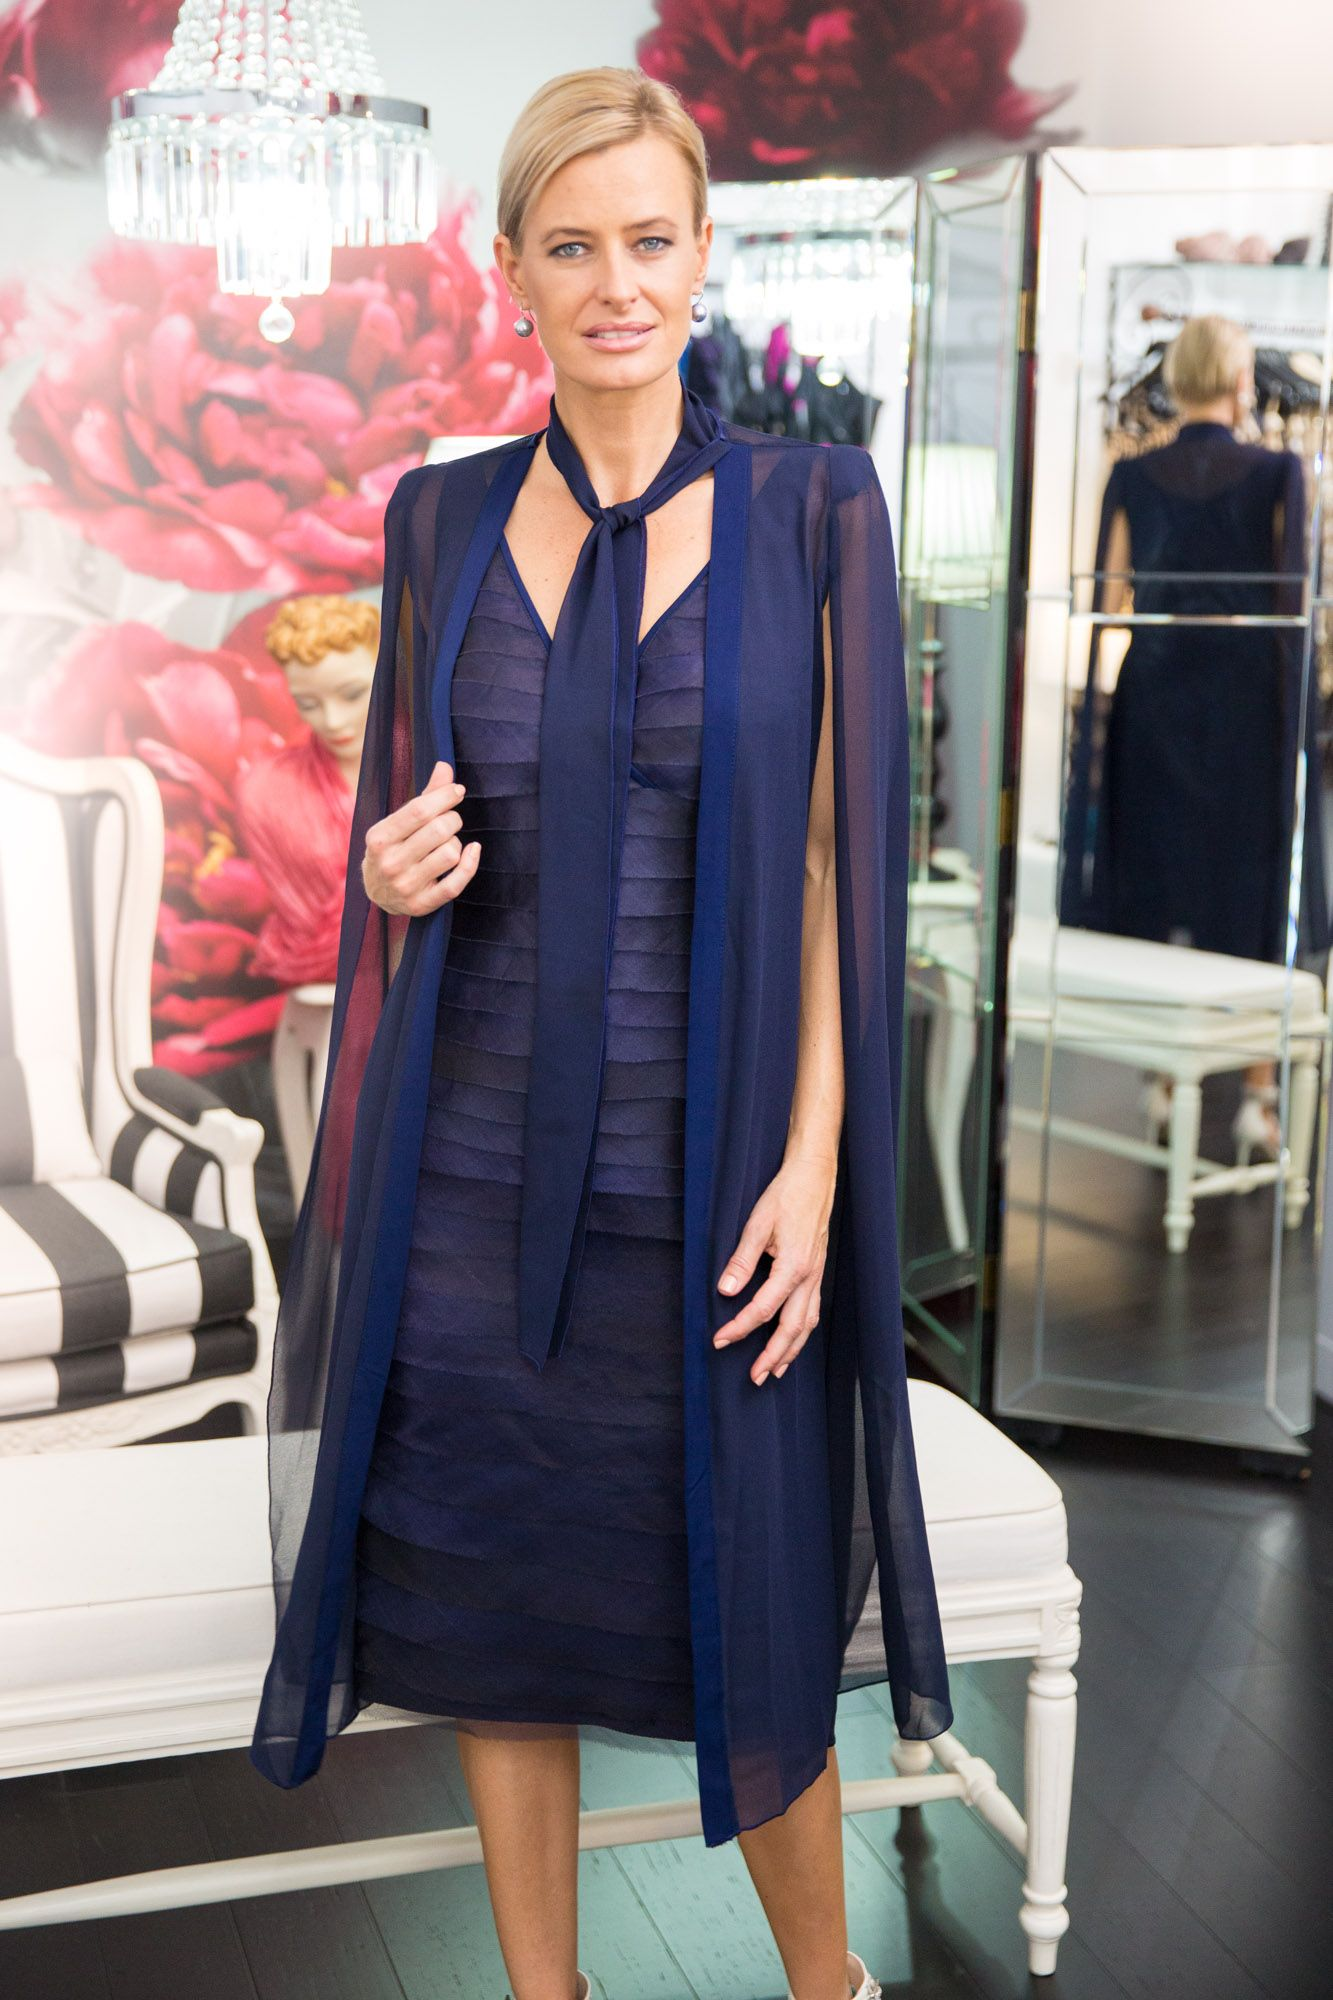 0ff2f89f017e The Oasis Dress and Coat in navy blue is an elegant two piece outfit option  for the modern #motherofthebride and #motherofthegroom. For ladies looking  for a ...